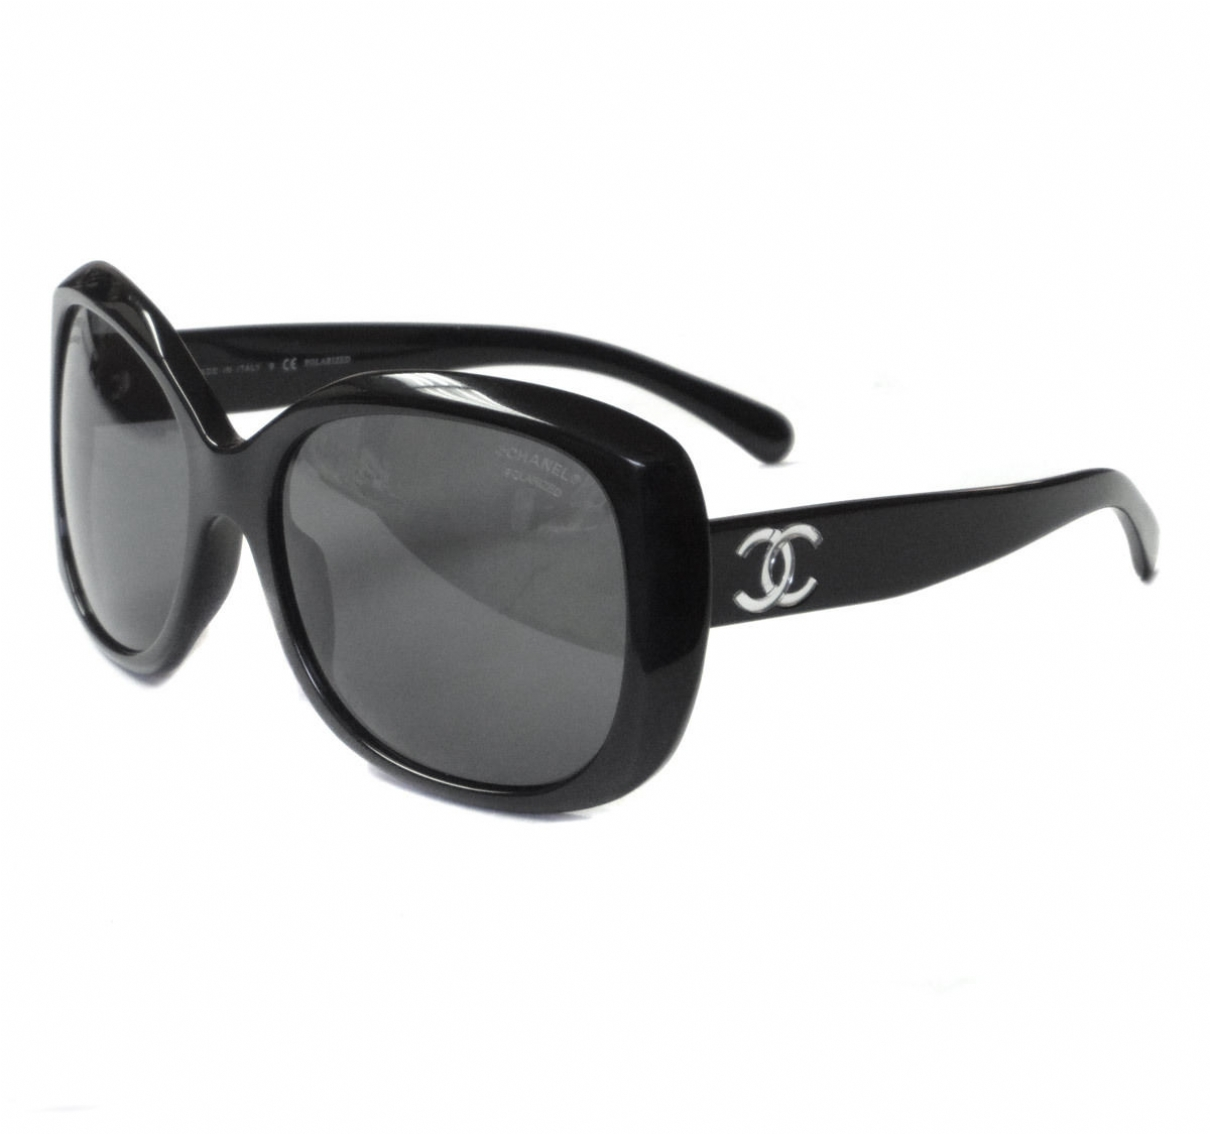 CLEARANCE CHANEL 5183